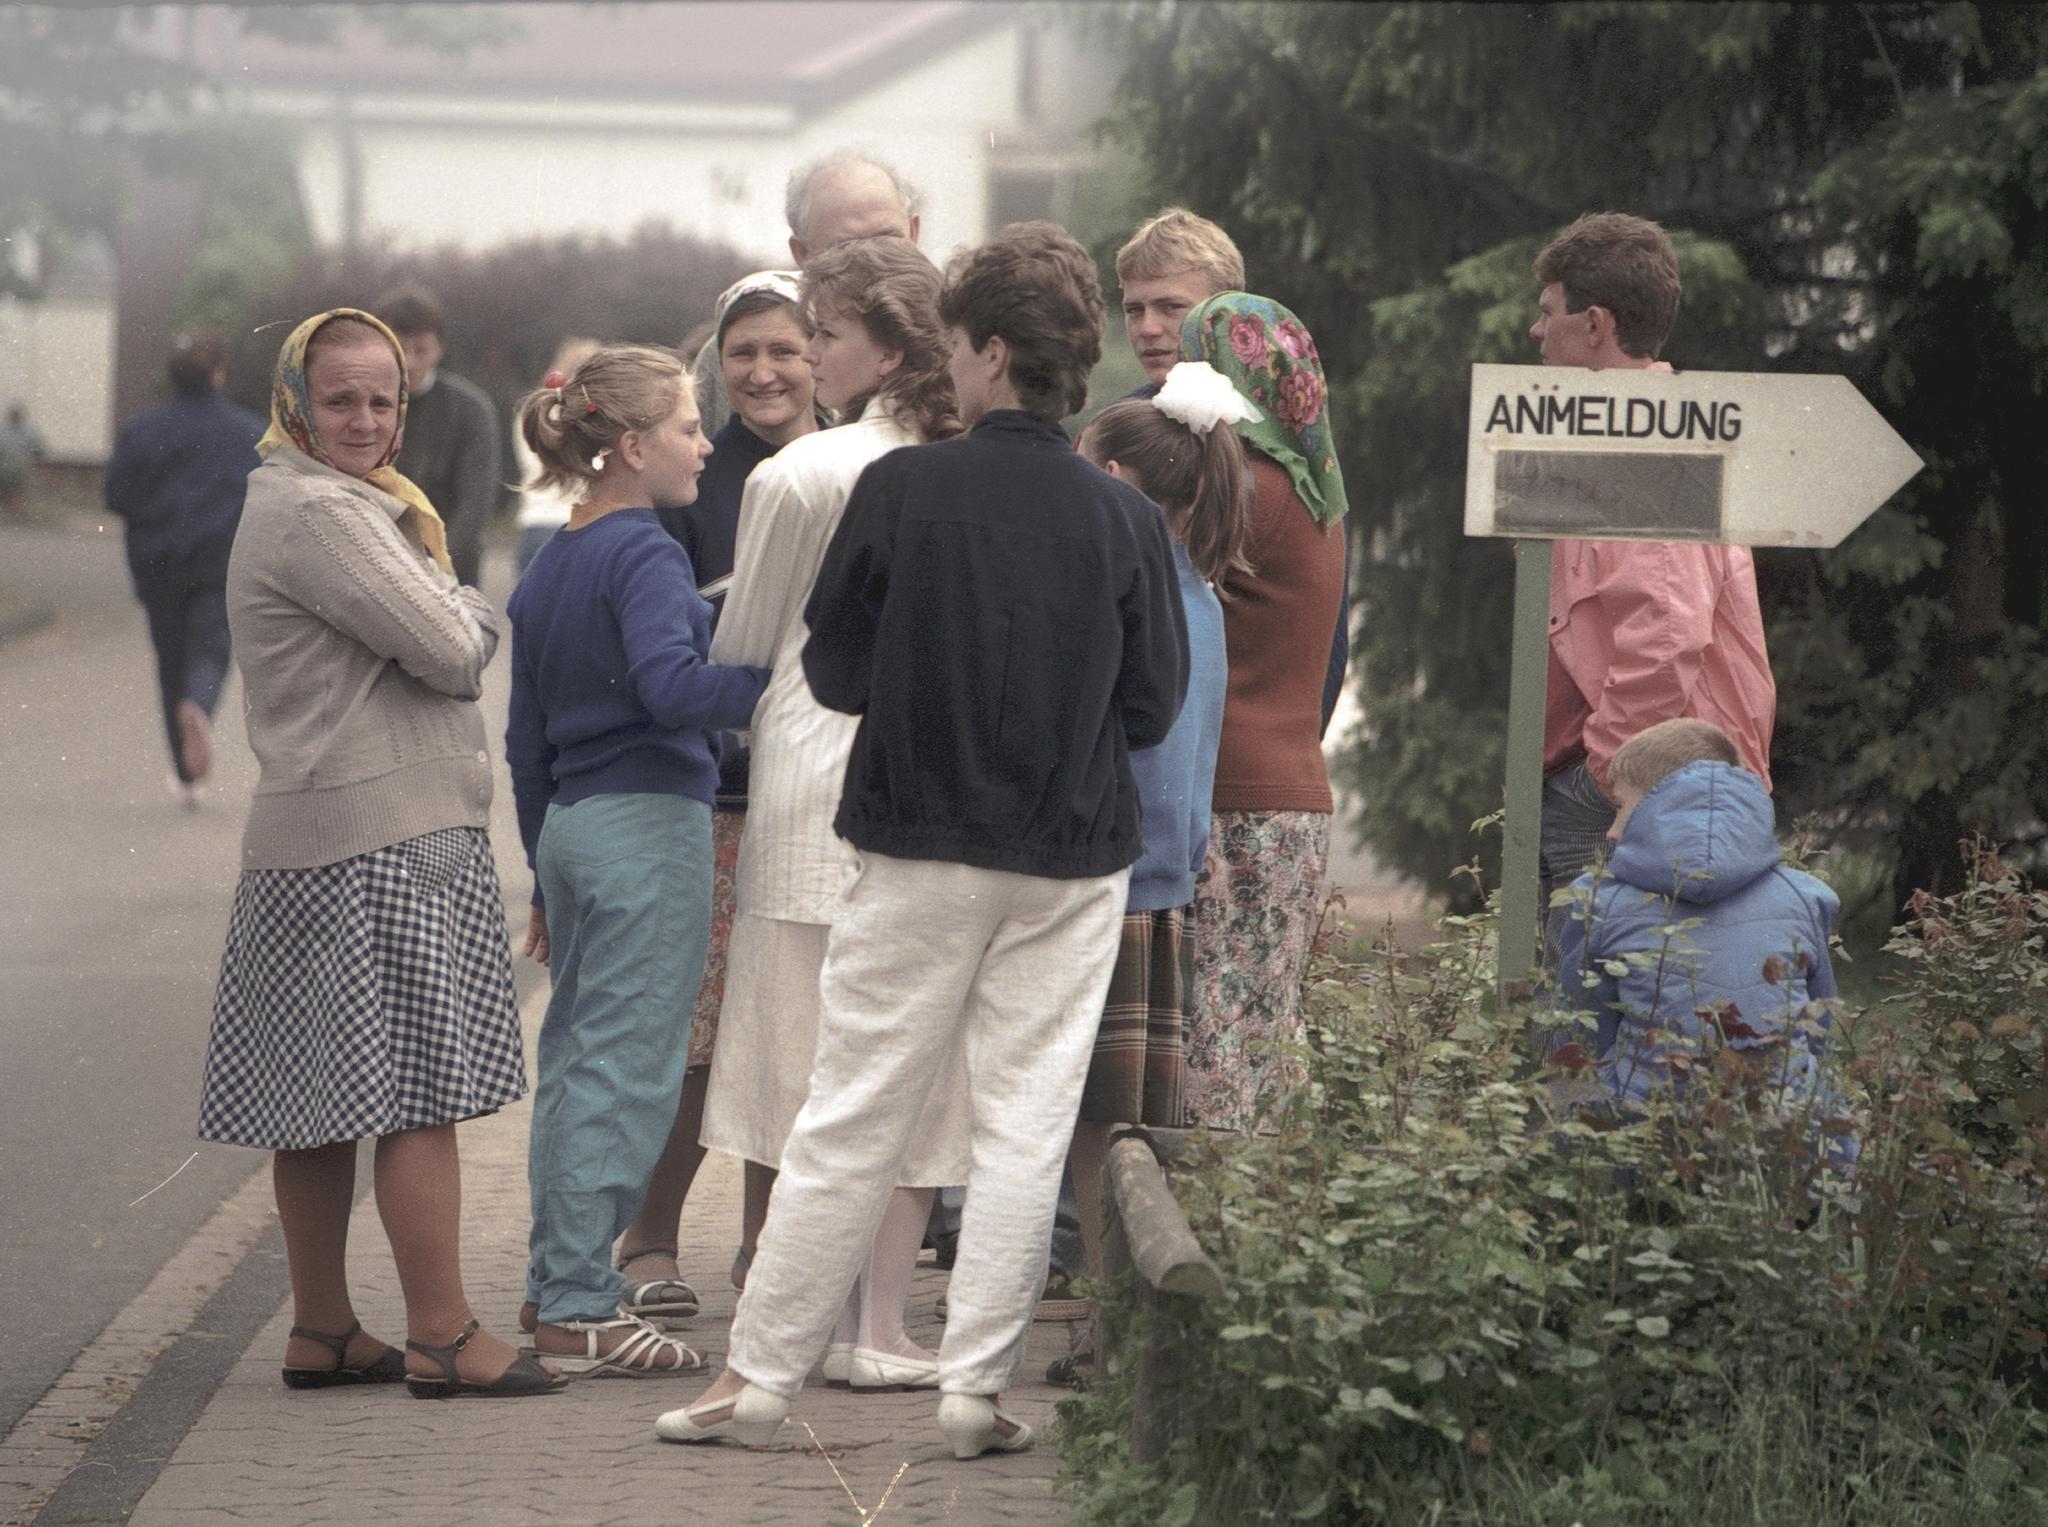 Family from Tajikistan waiting to register, June 1988